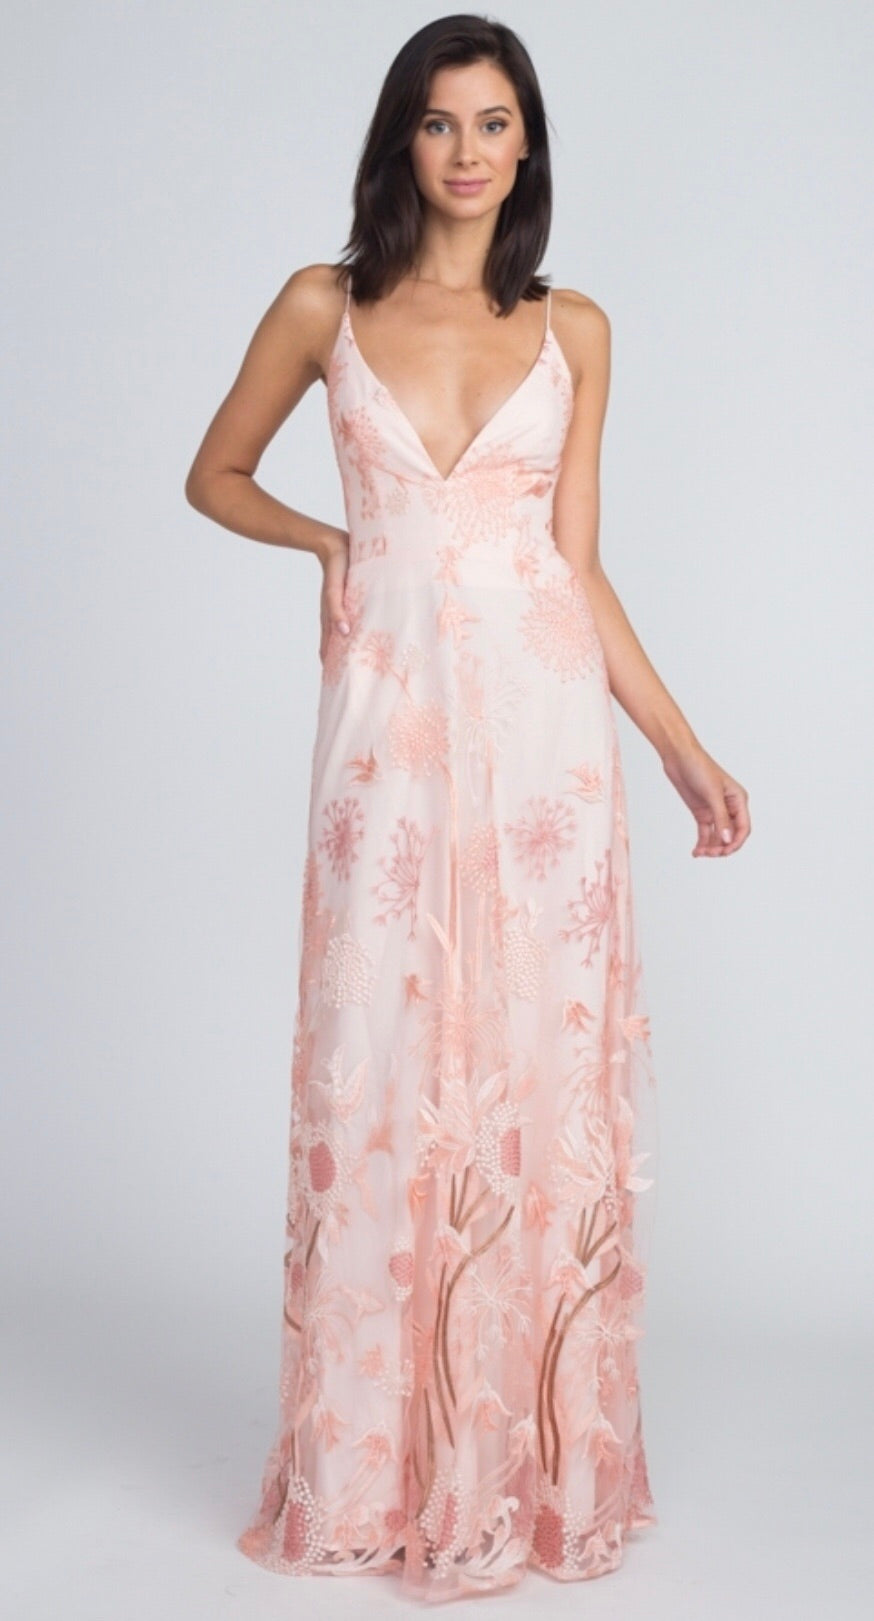 FLORAL MAXI WITH DEEP V AND LACE BACK